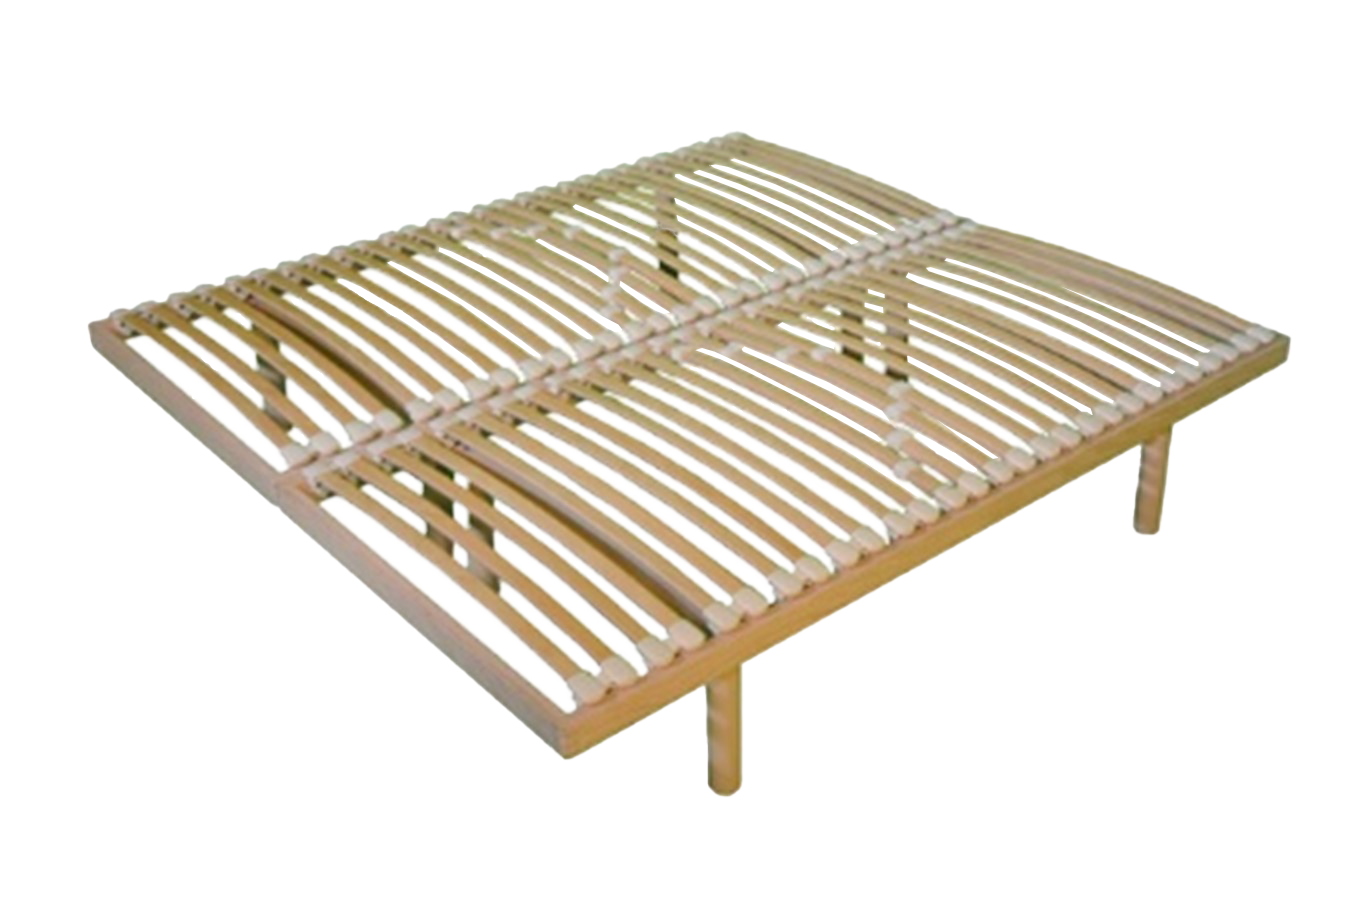 Orthoflex Bed Frame